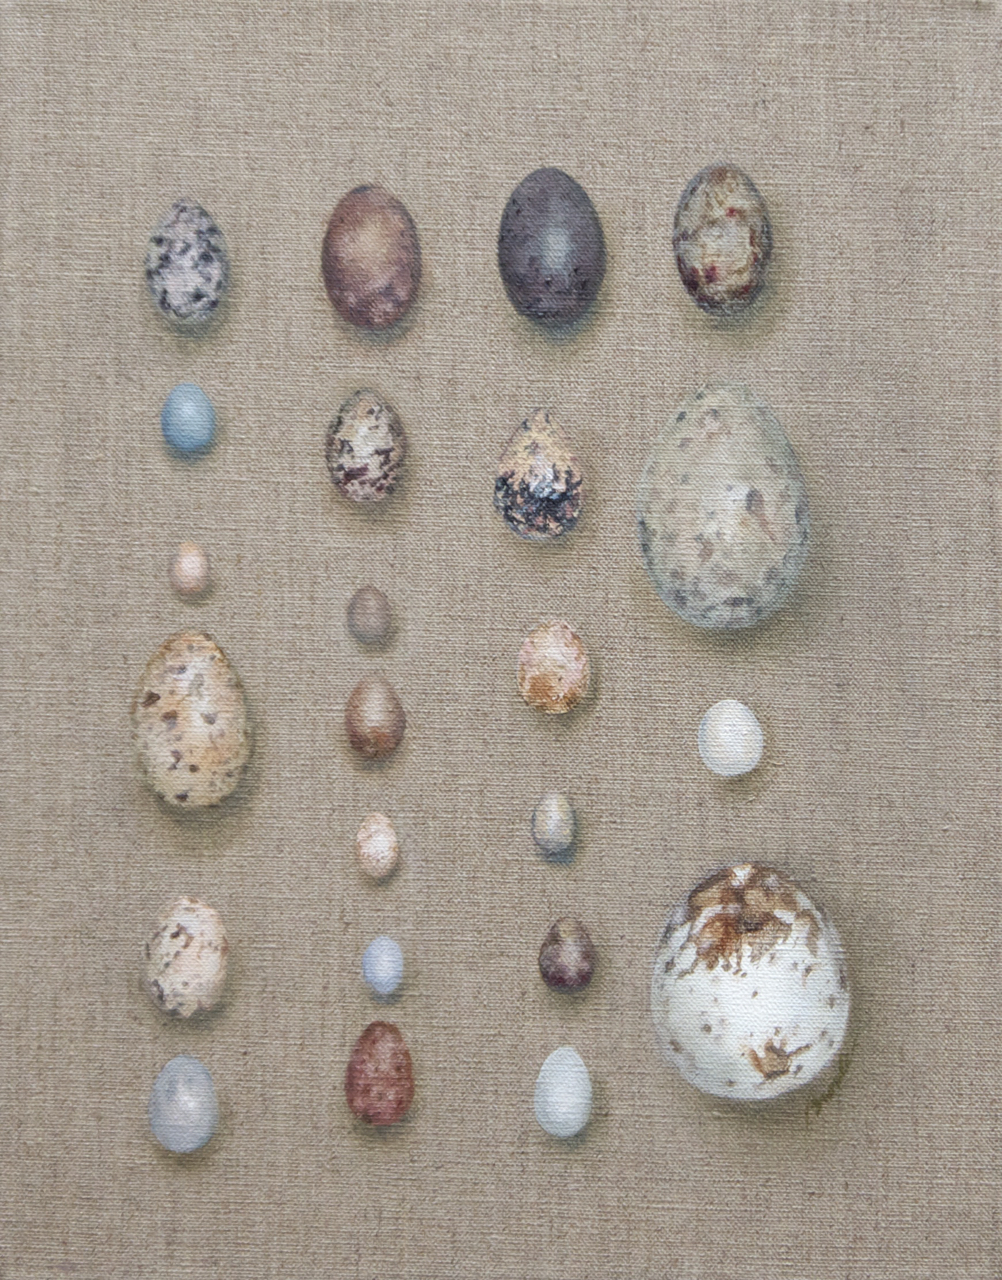 Eggs and Feathers: collection of wild bird eggs